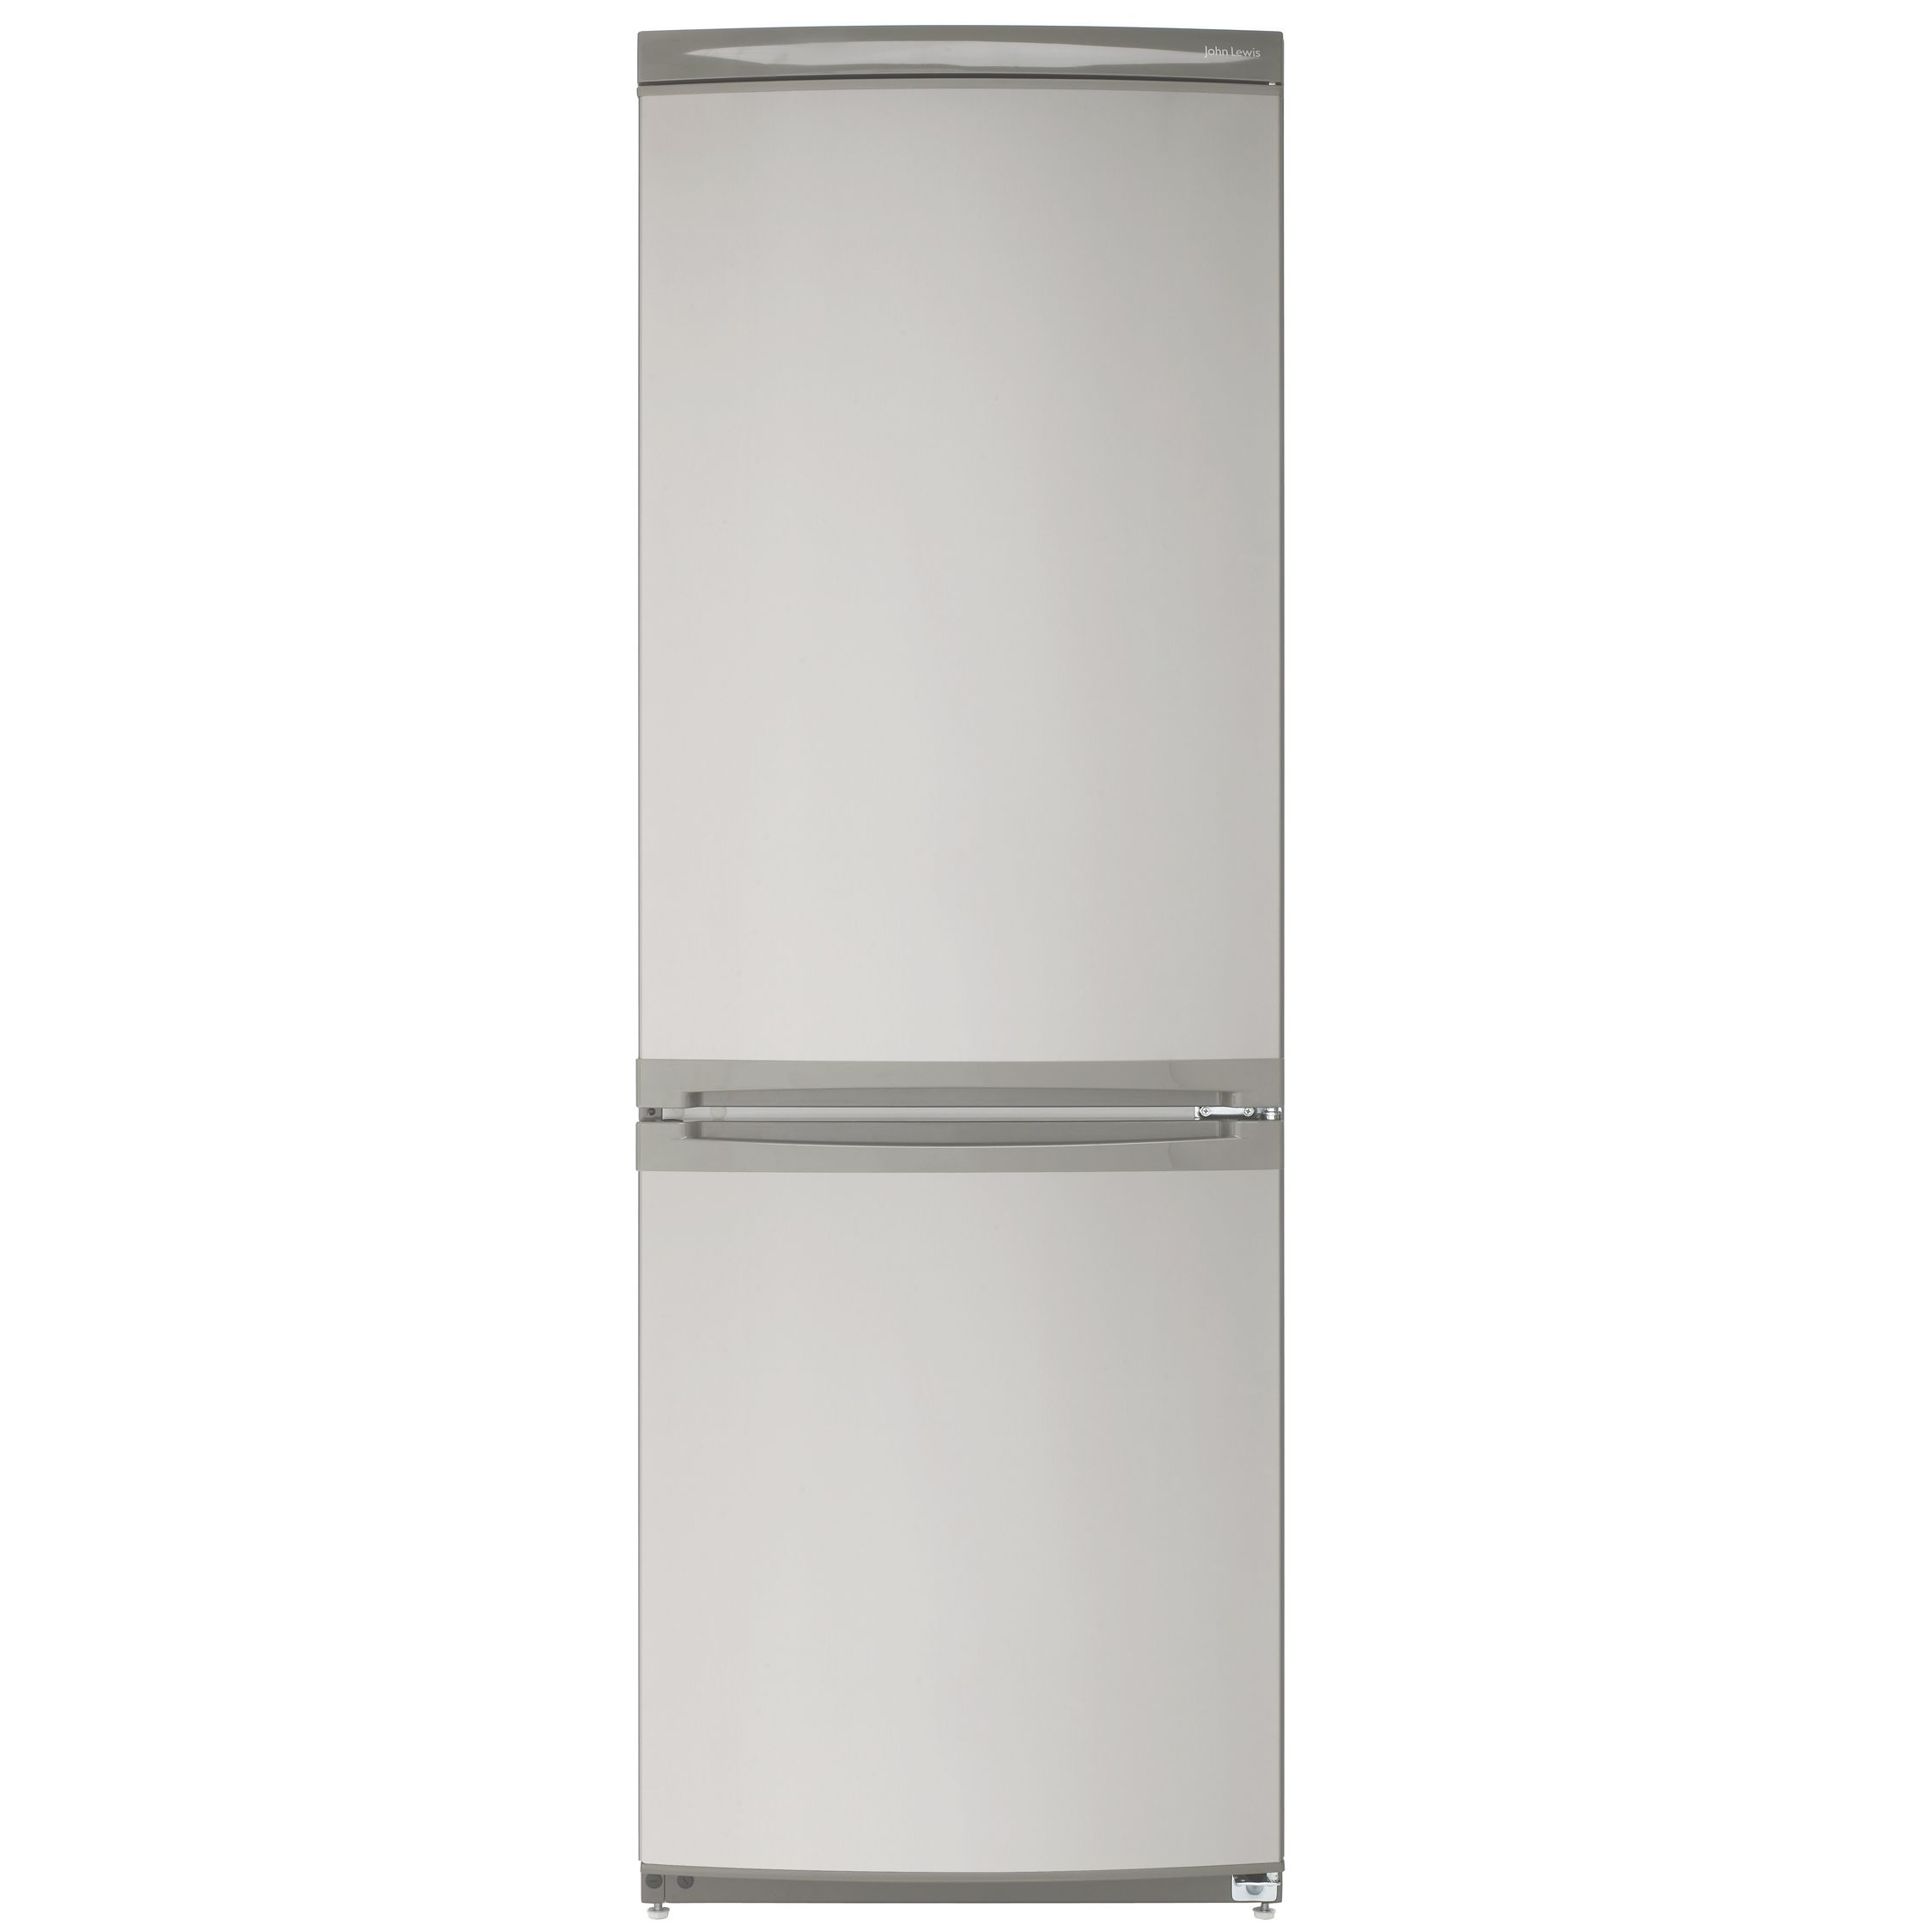 John Lewis JLFFIN175 Fridge Freezer, Stainless Steel Look at John Lewis